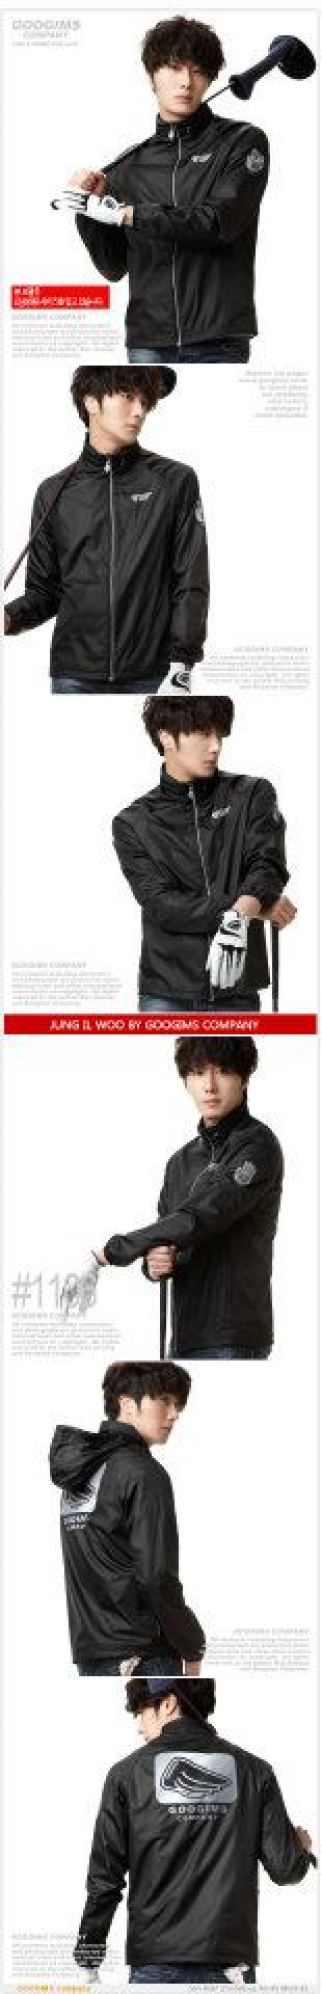 2011 10 Jung II-woo for Googims. Part 100001